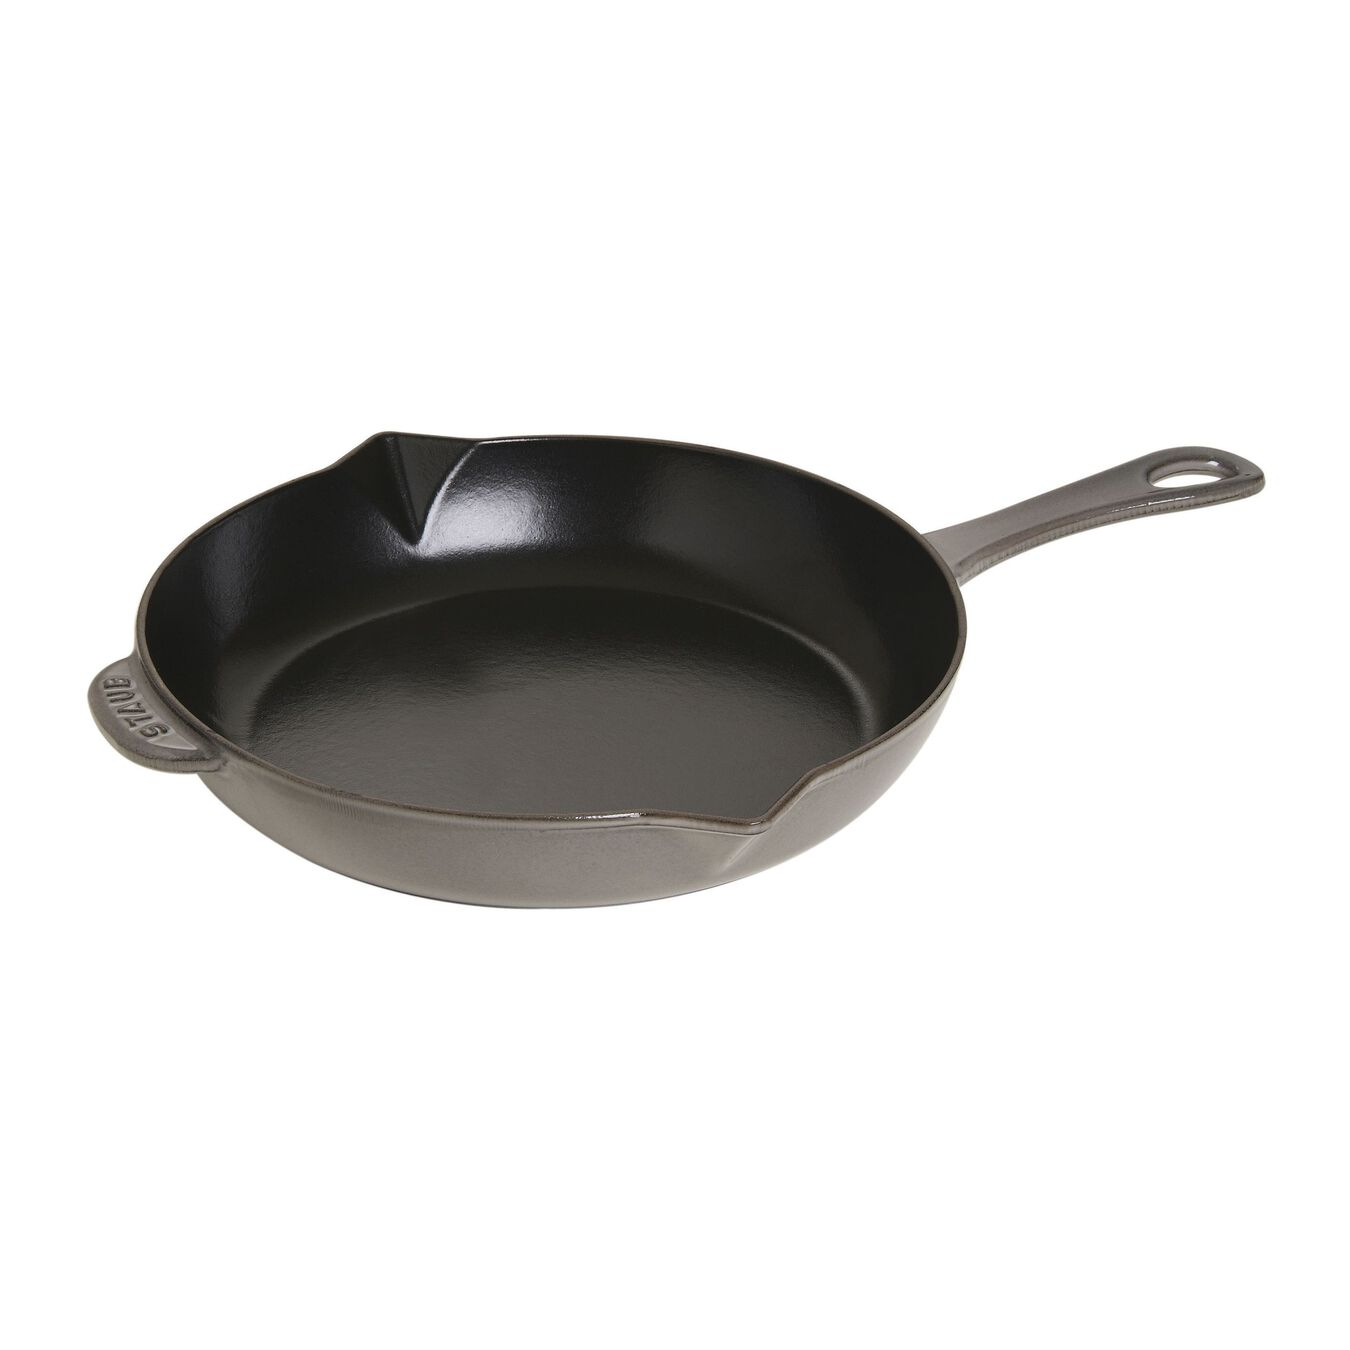 10-inch, Frying pan with pouring spout, black matte,,large 2